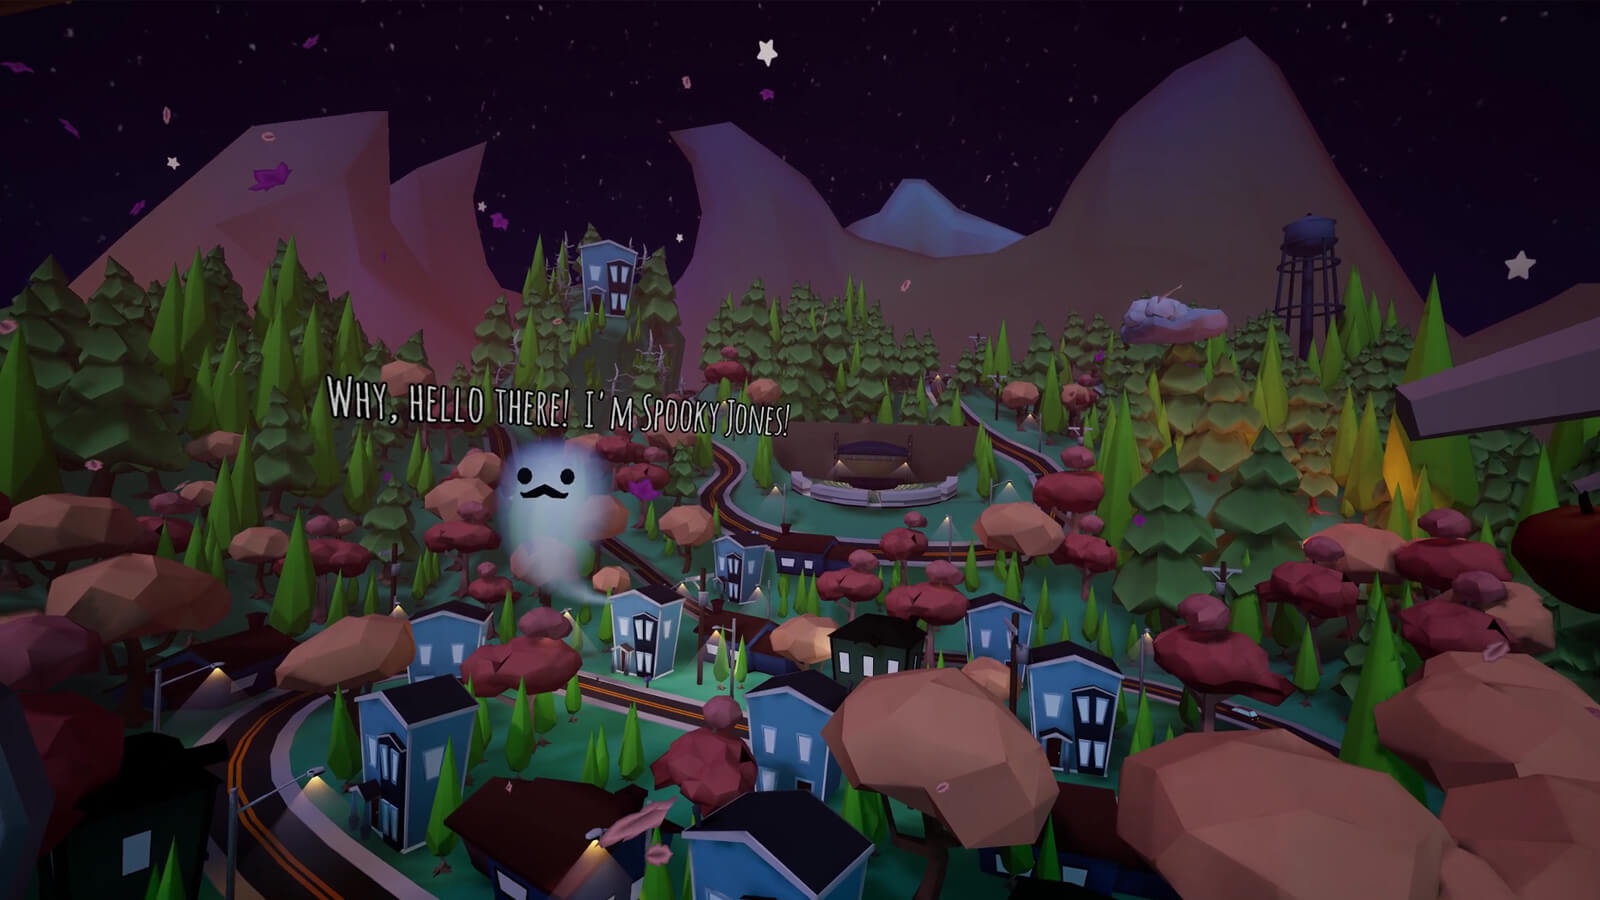 Spooky Jones the ghost greets the player hovering high above Redleaf Hollow.